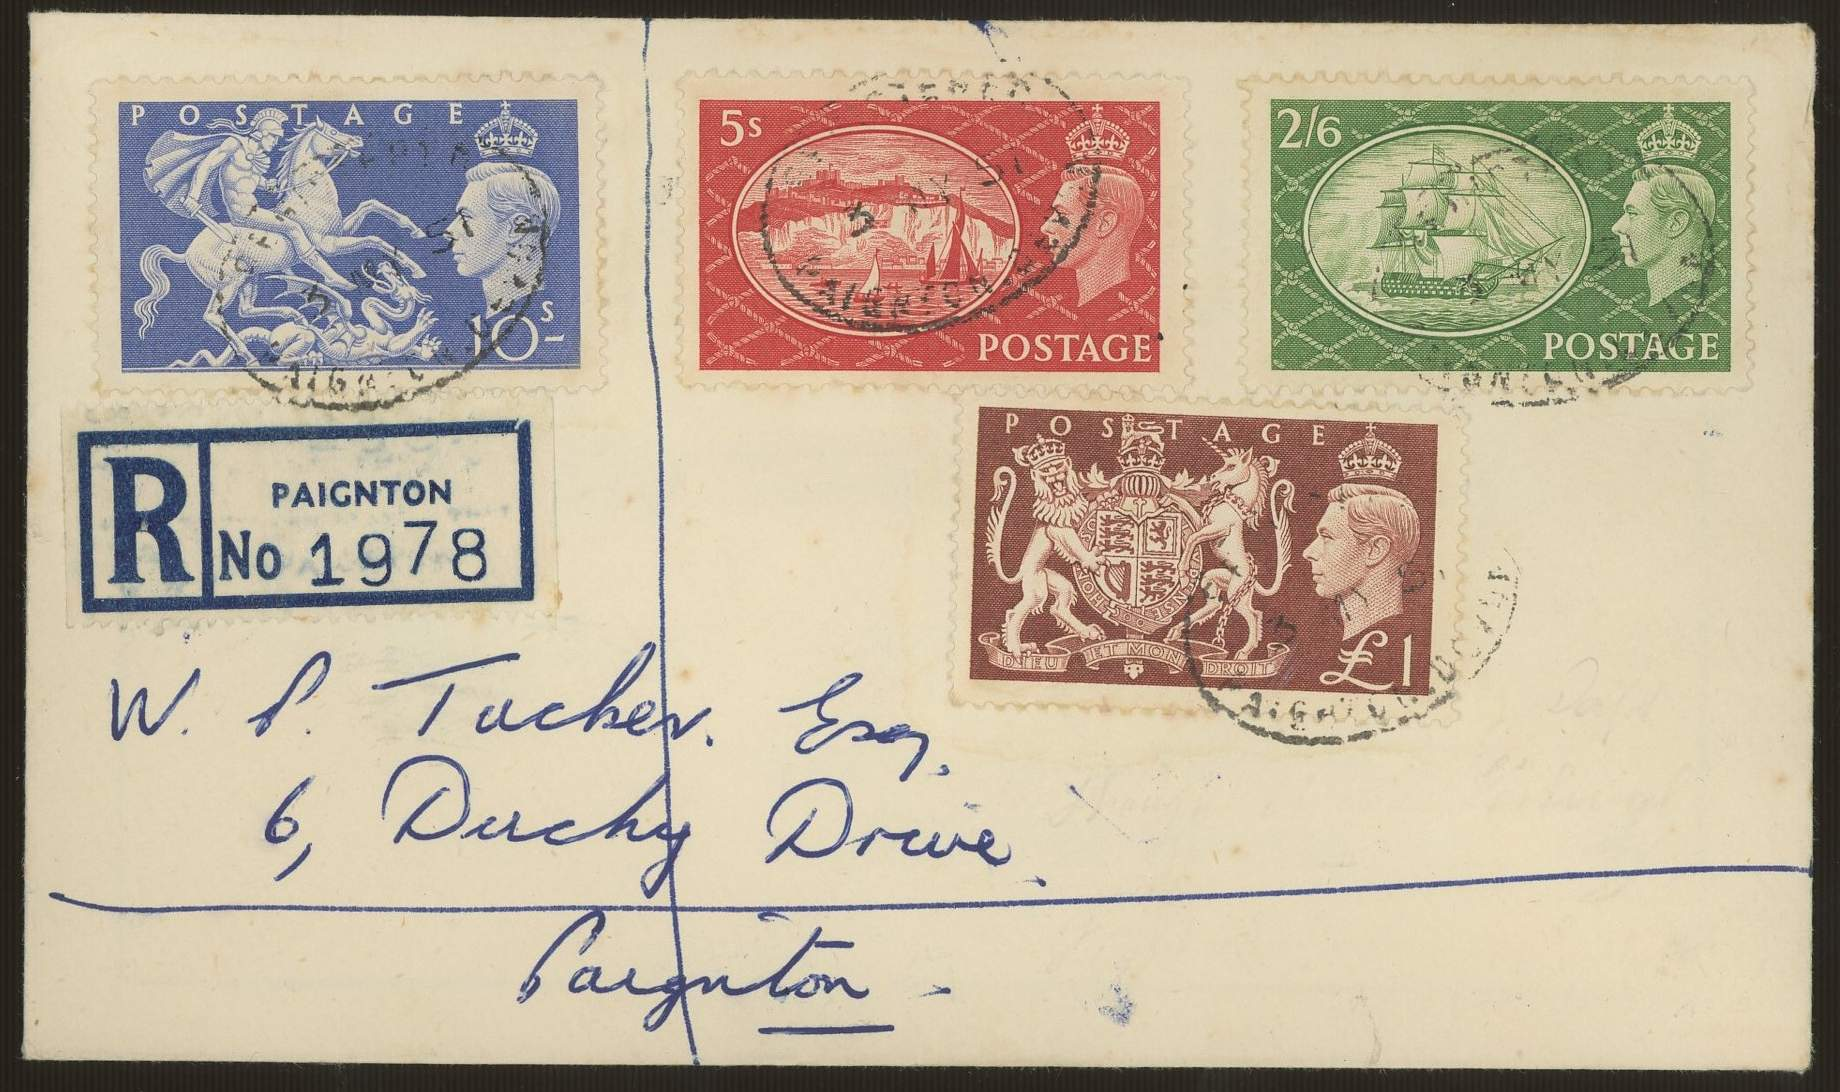 1951 Festival High Values plain FDC with Registered Paignton oval H/S. Handwritten address, fine.